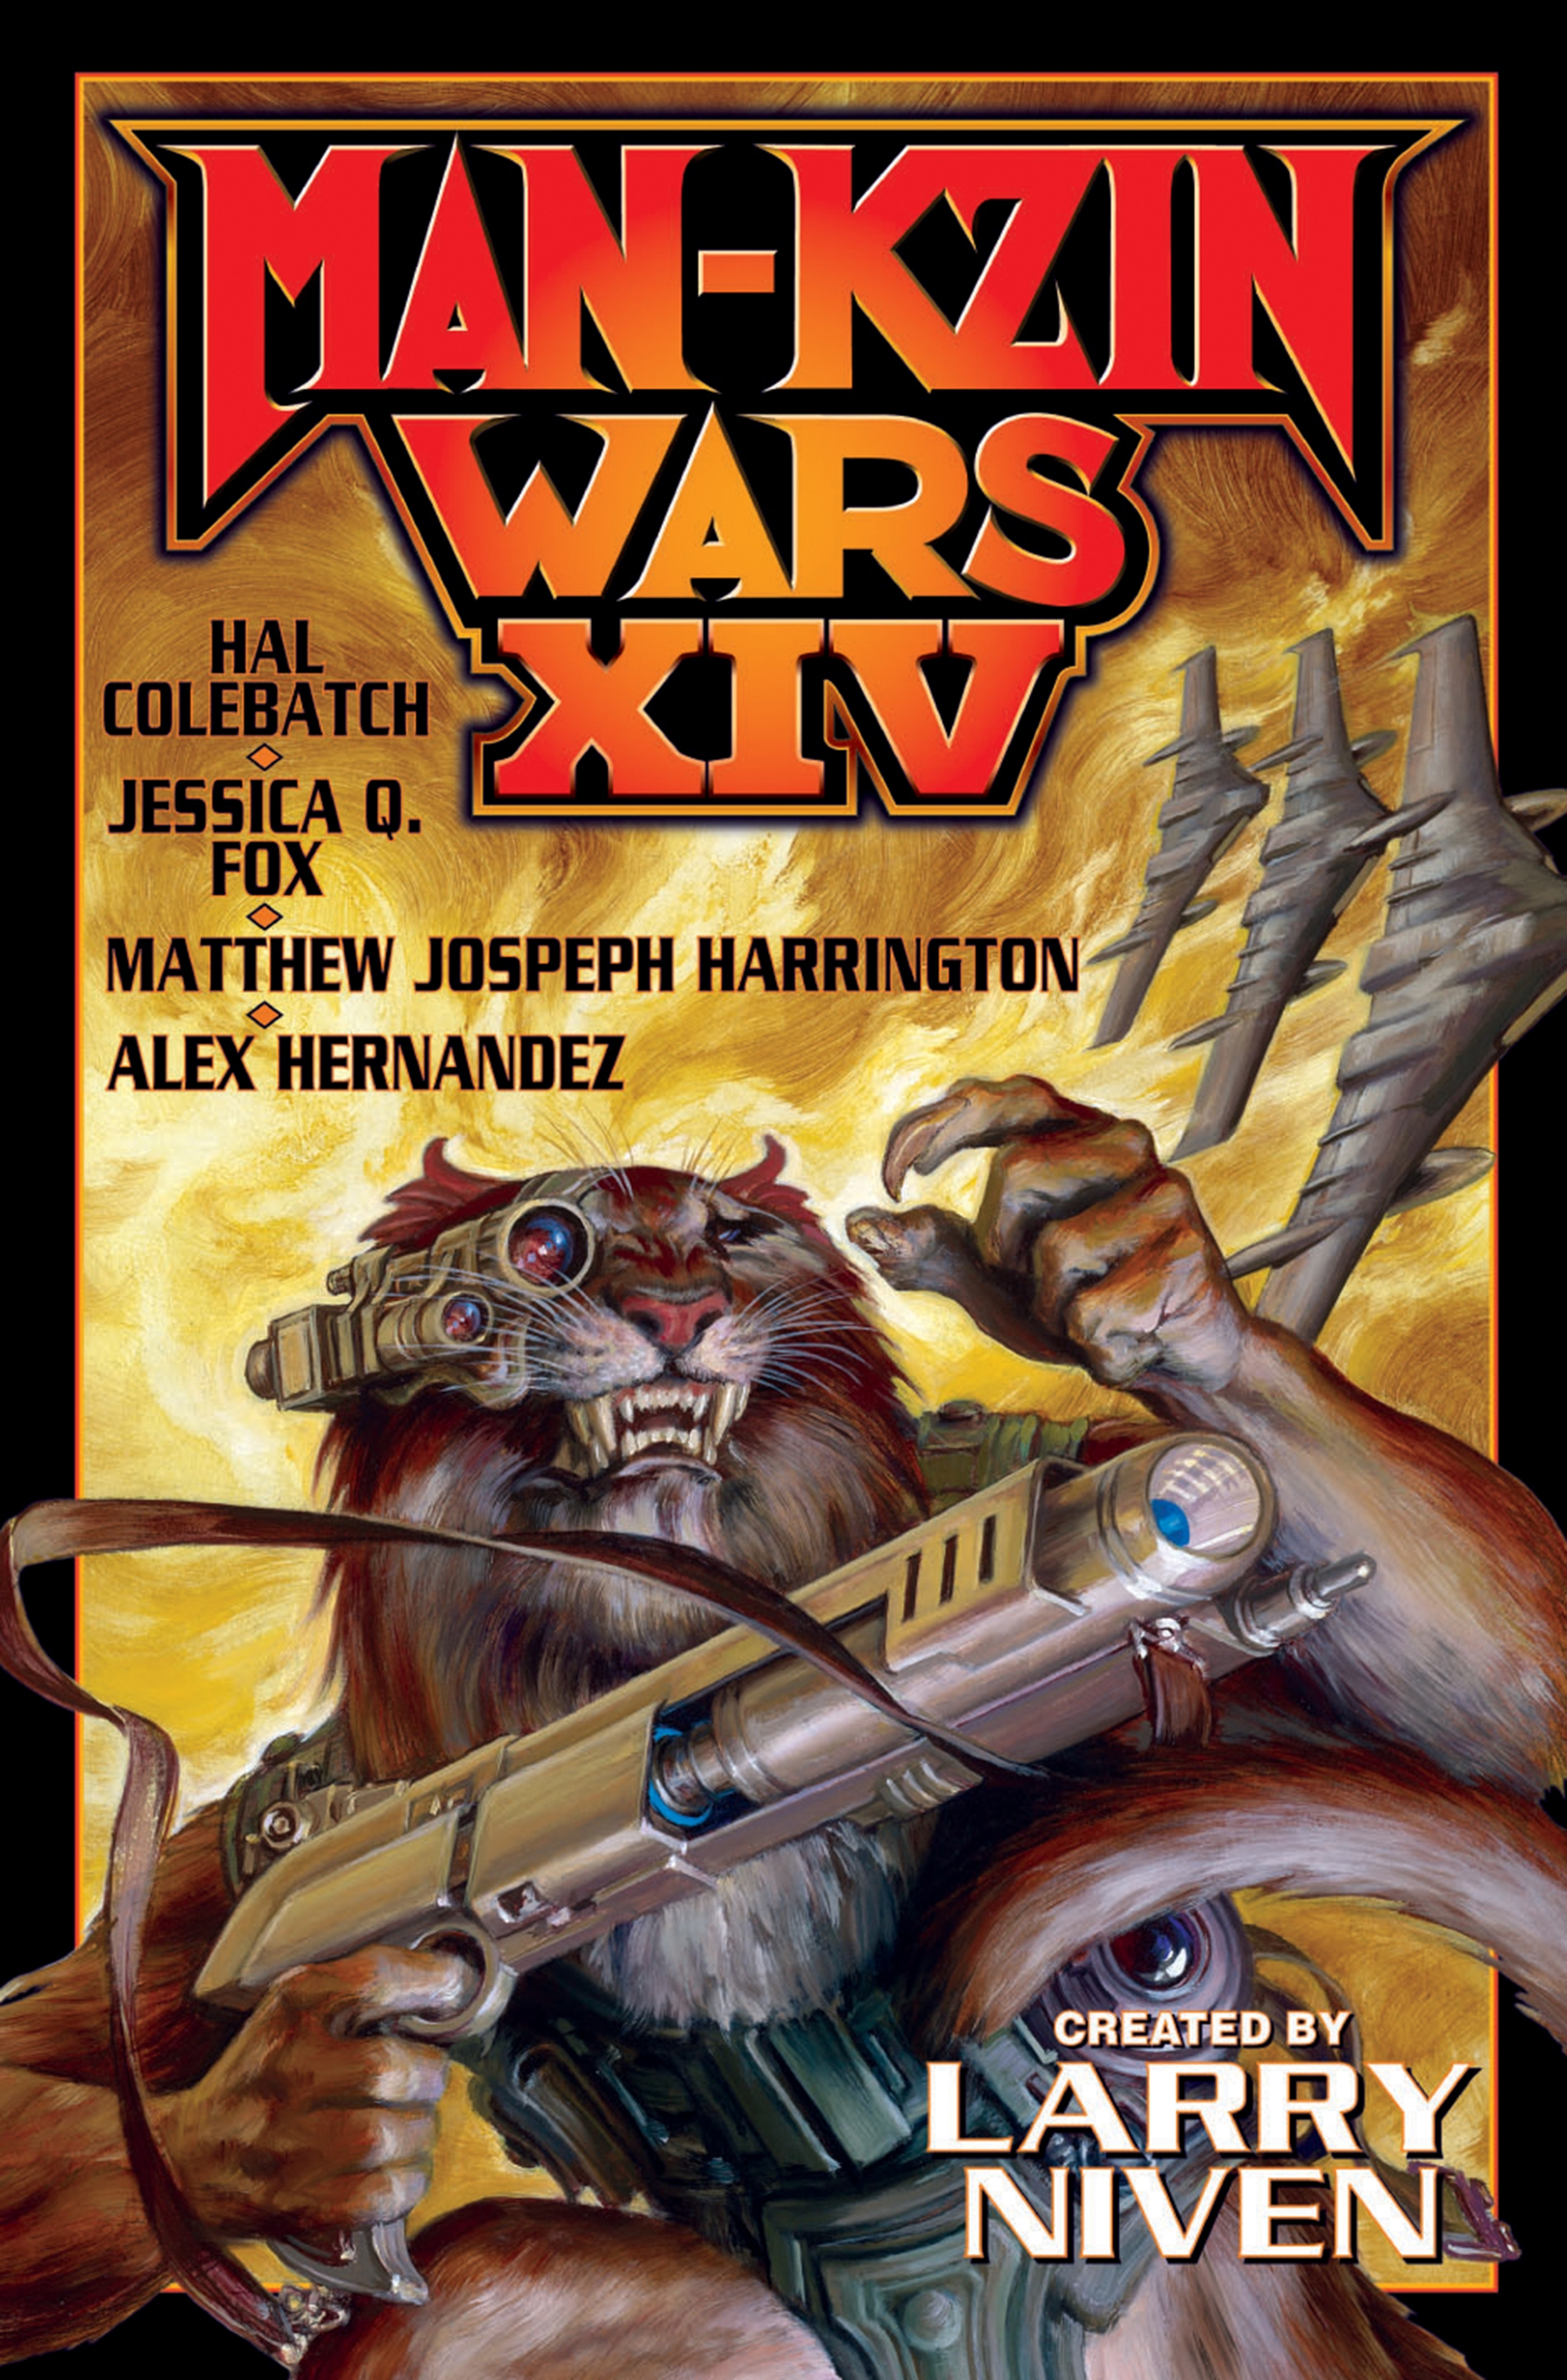 Man-Kzin XIV | Book by Larry Niven | Official Publisher Page